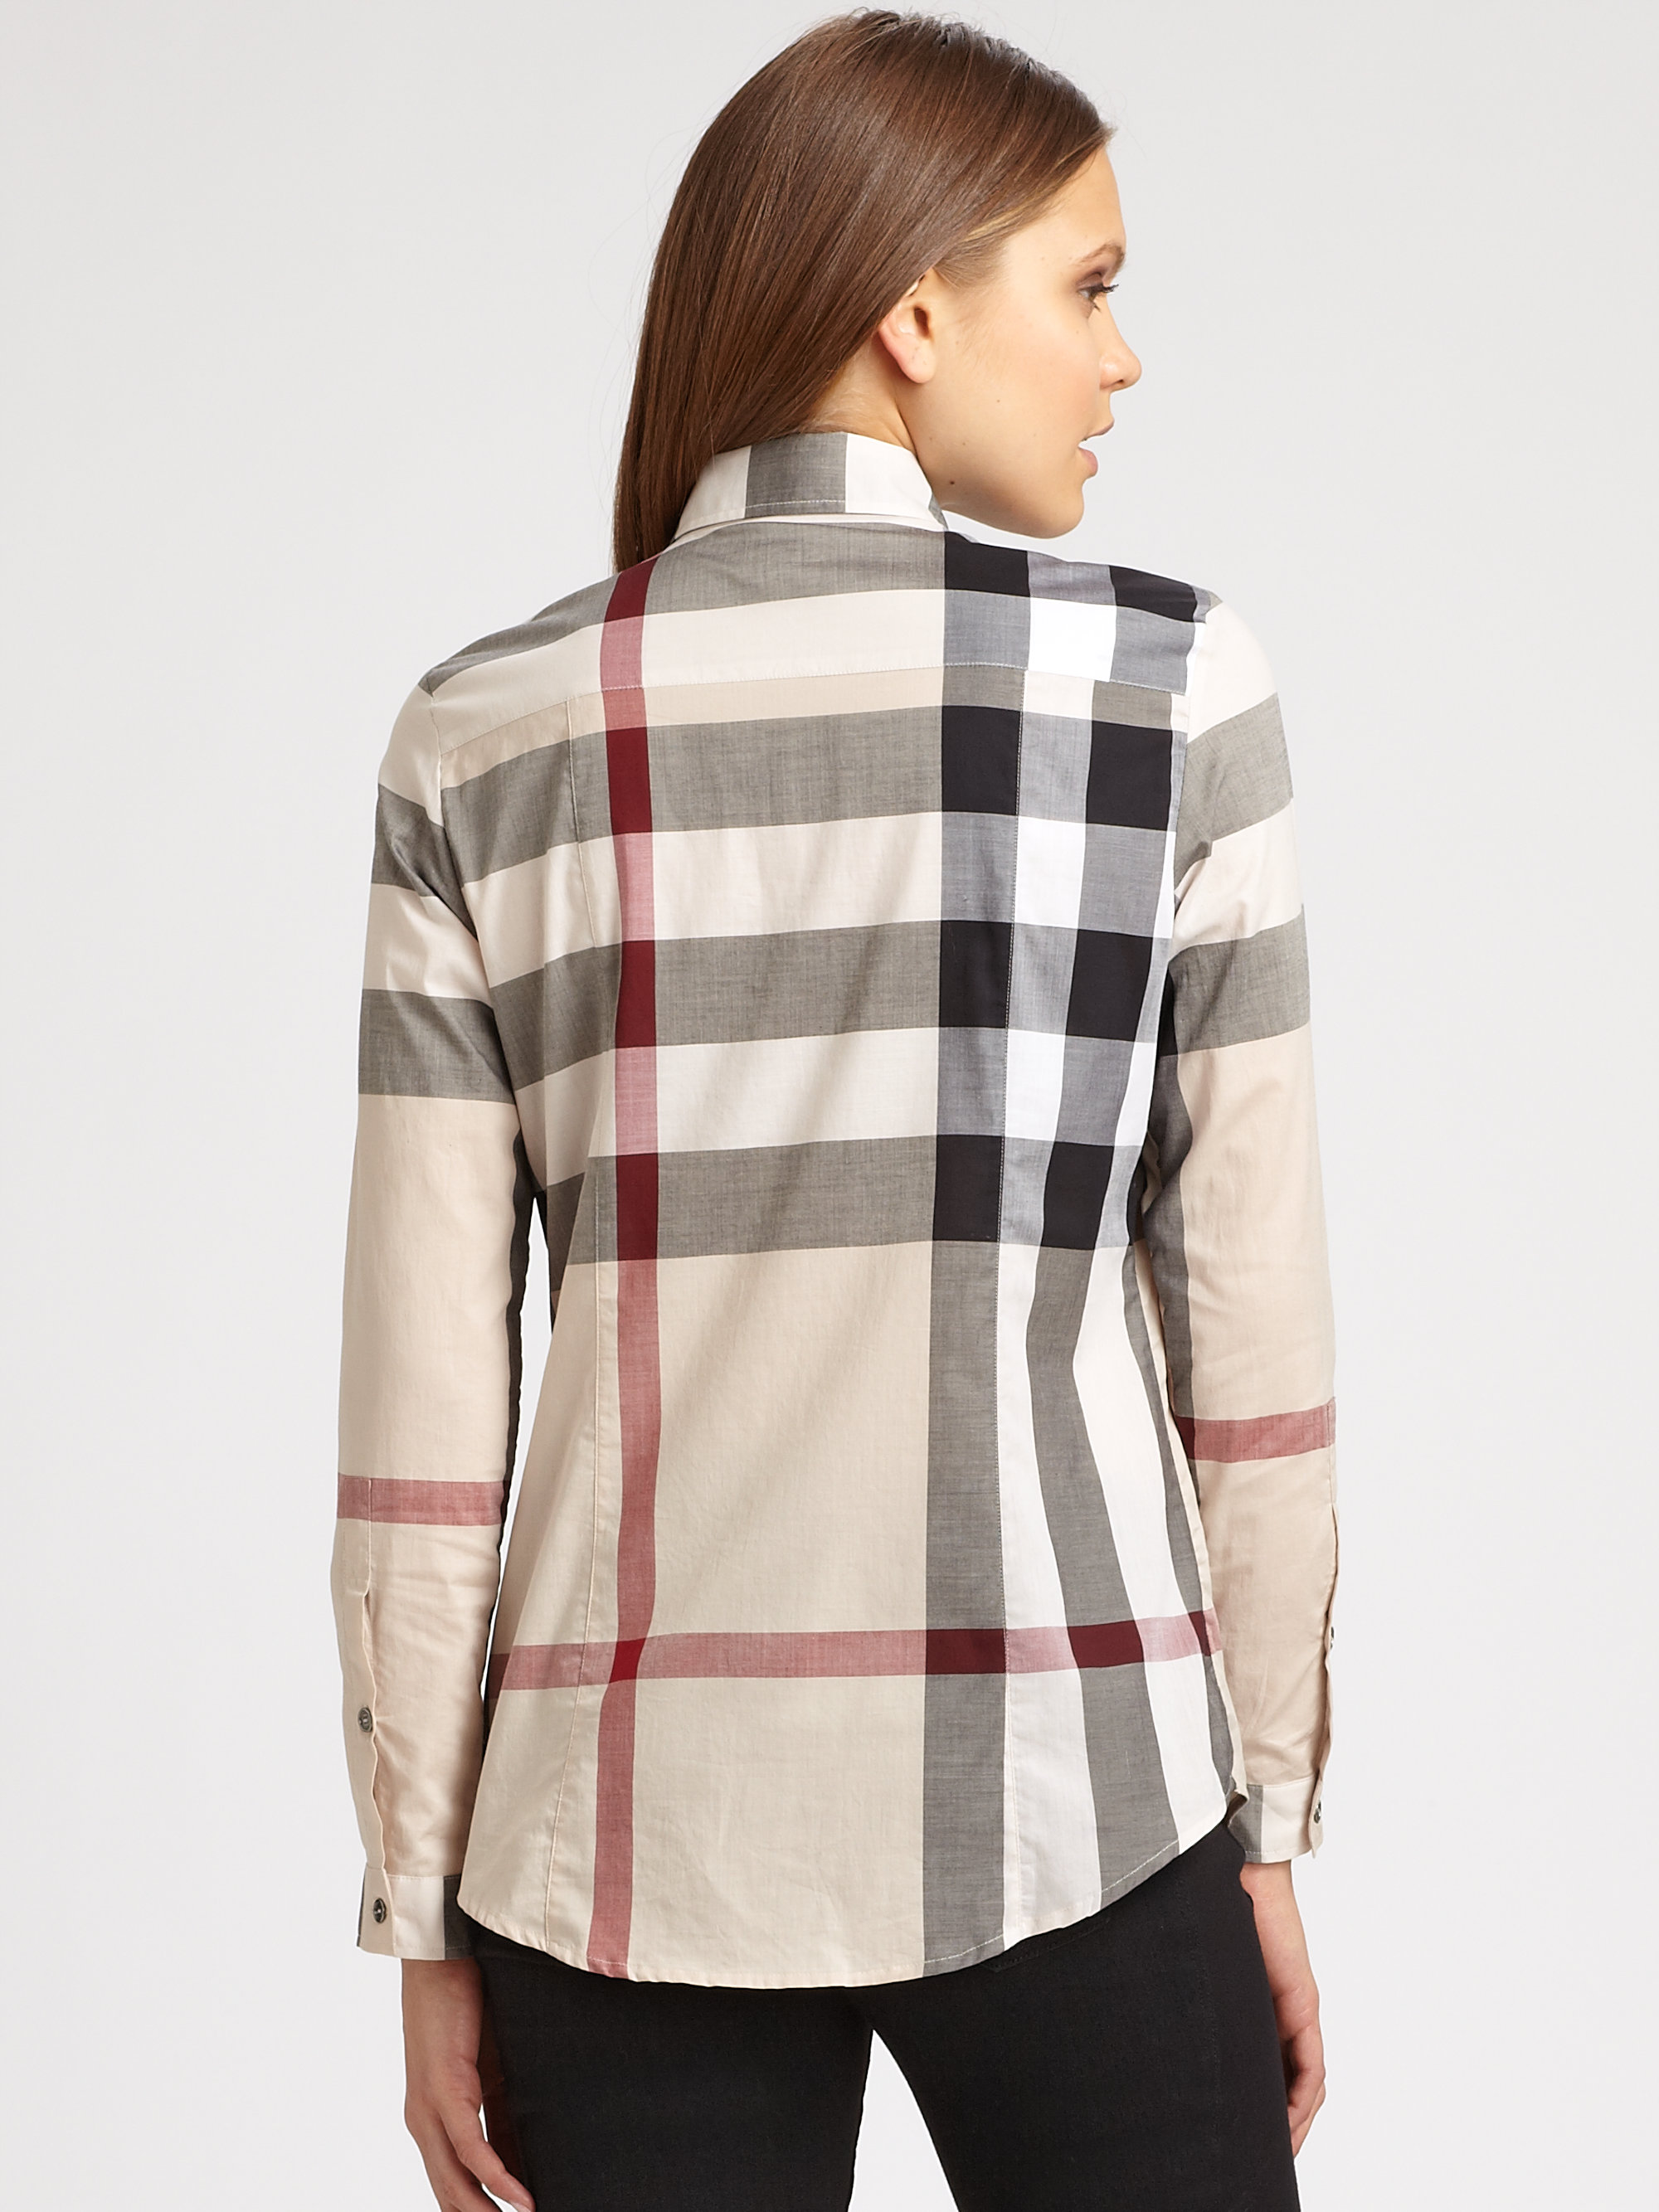 burberry jacket outlet x344  burberry blouse burberry blouse